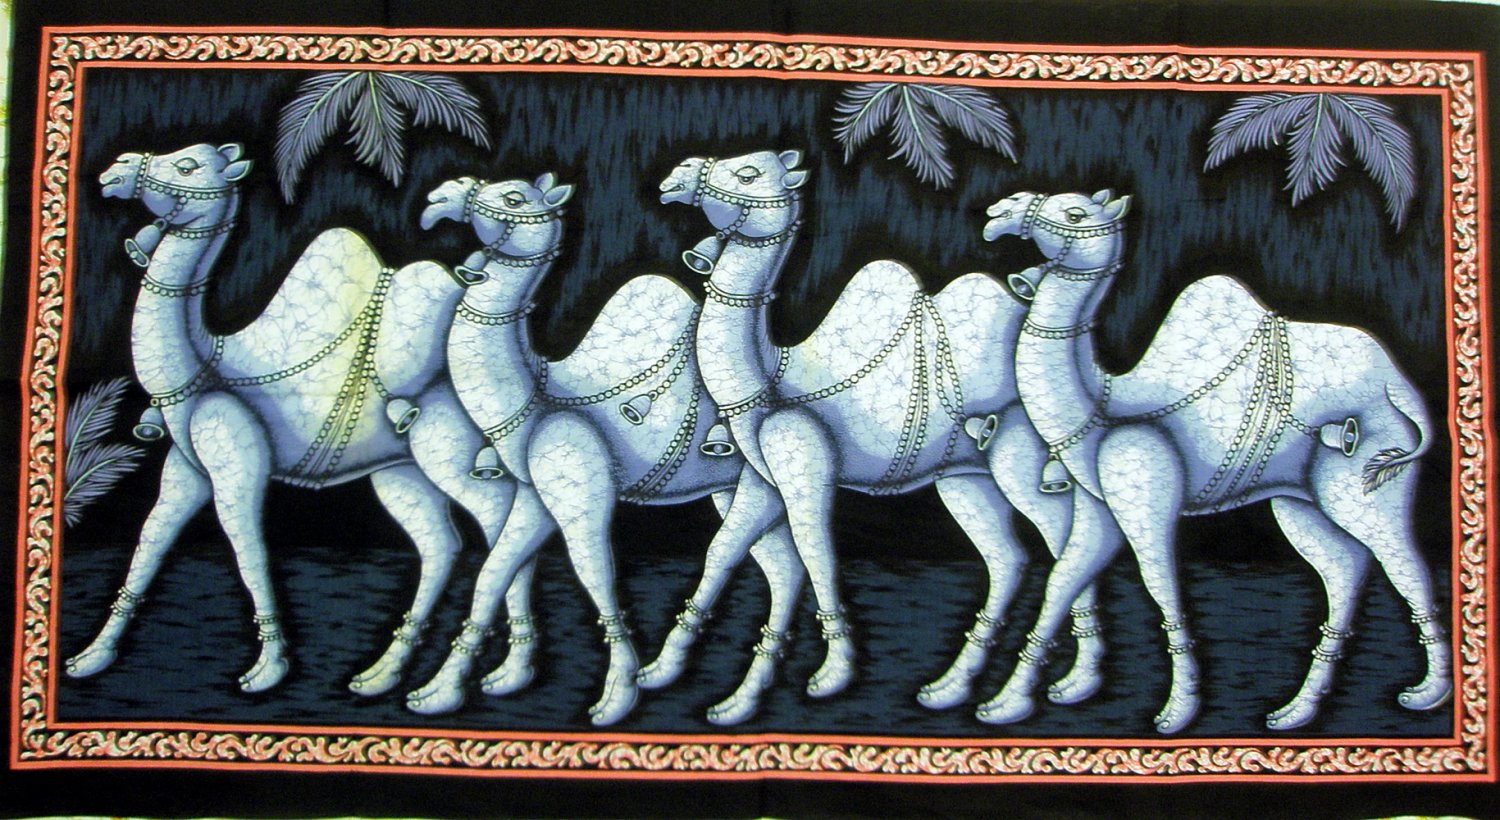 Camel Batik Cotton Cloth Wall Hanging Decor Indian Tapestry Ethnic India Home Decoration Art